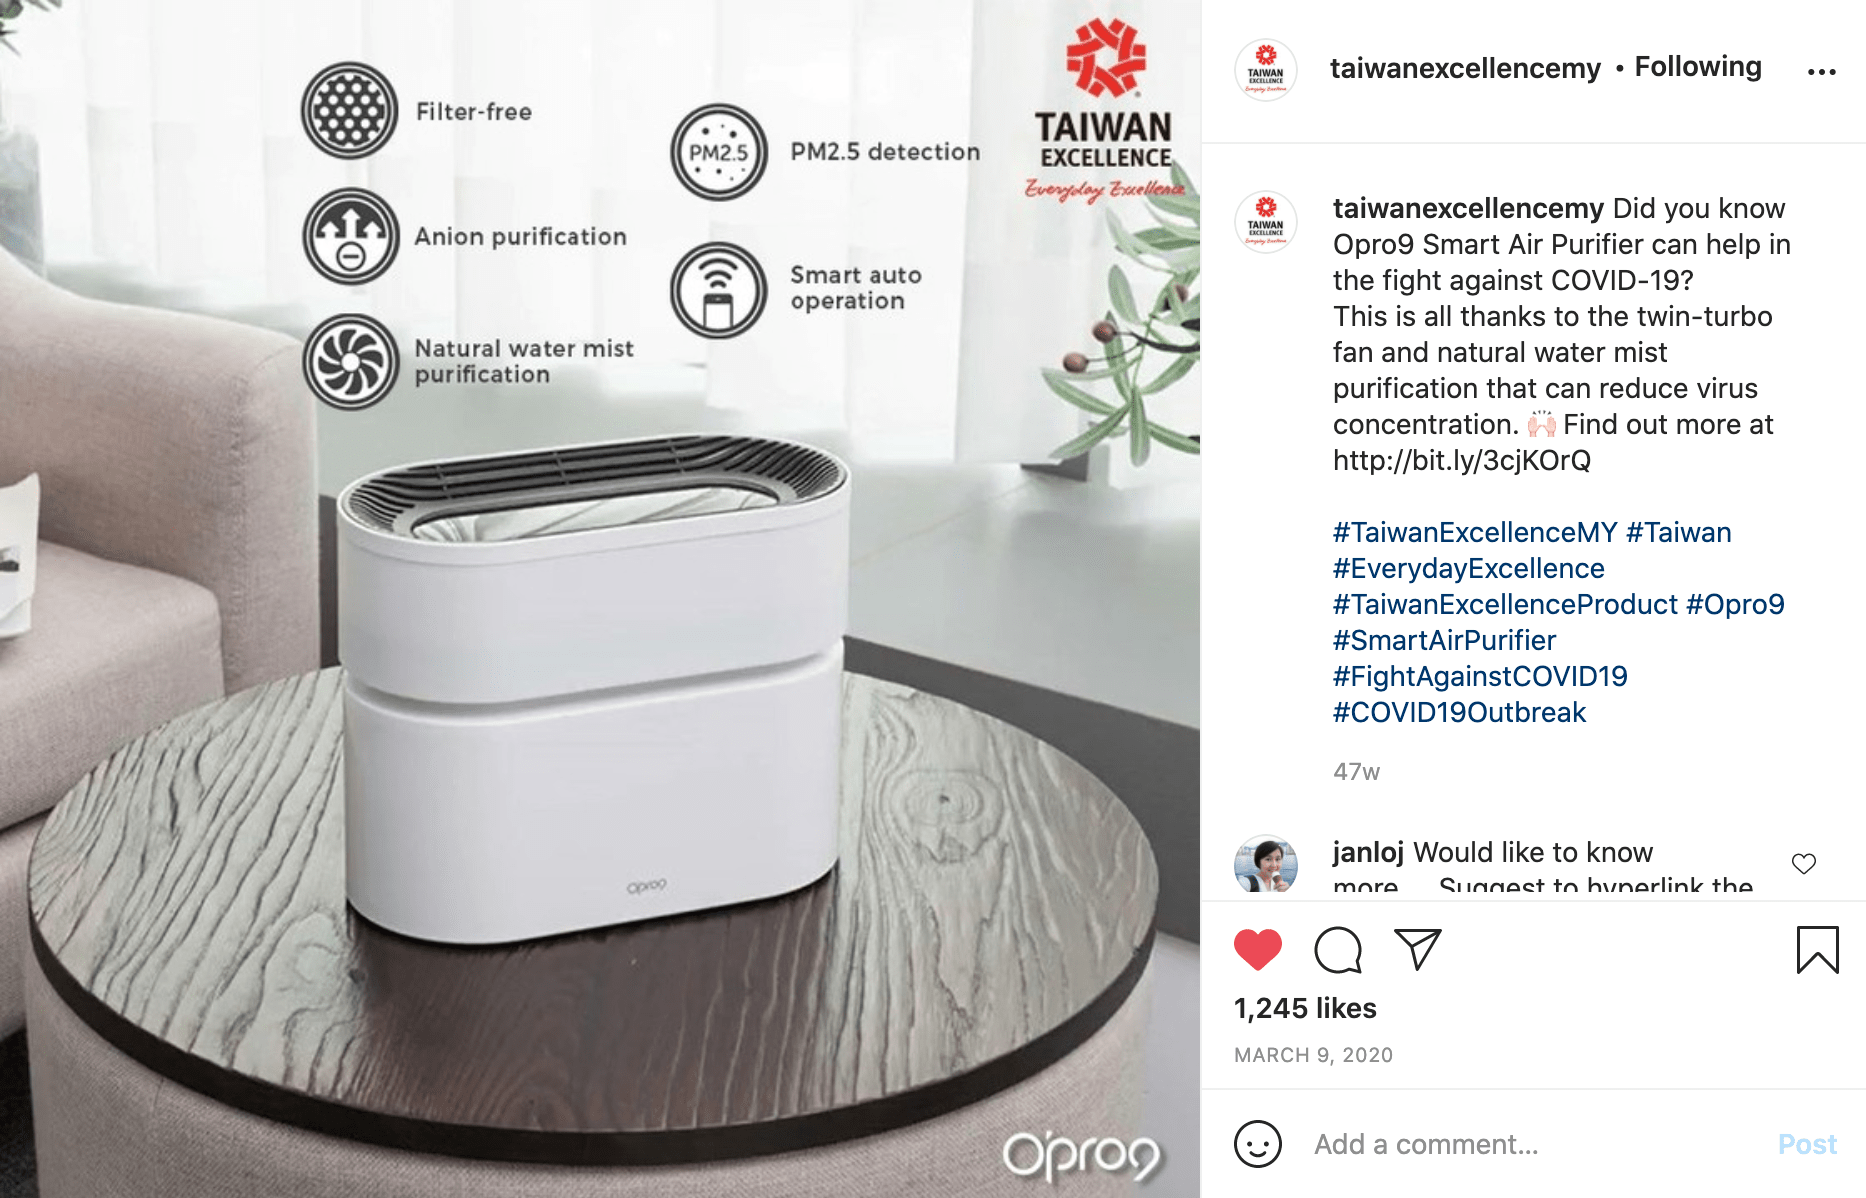 Taiwan Excellence - Opro9 Smart Air Purifier Instagram Post